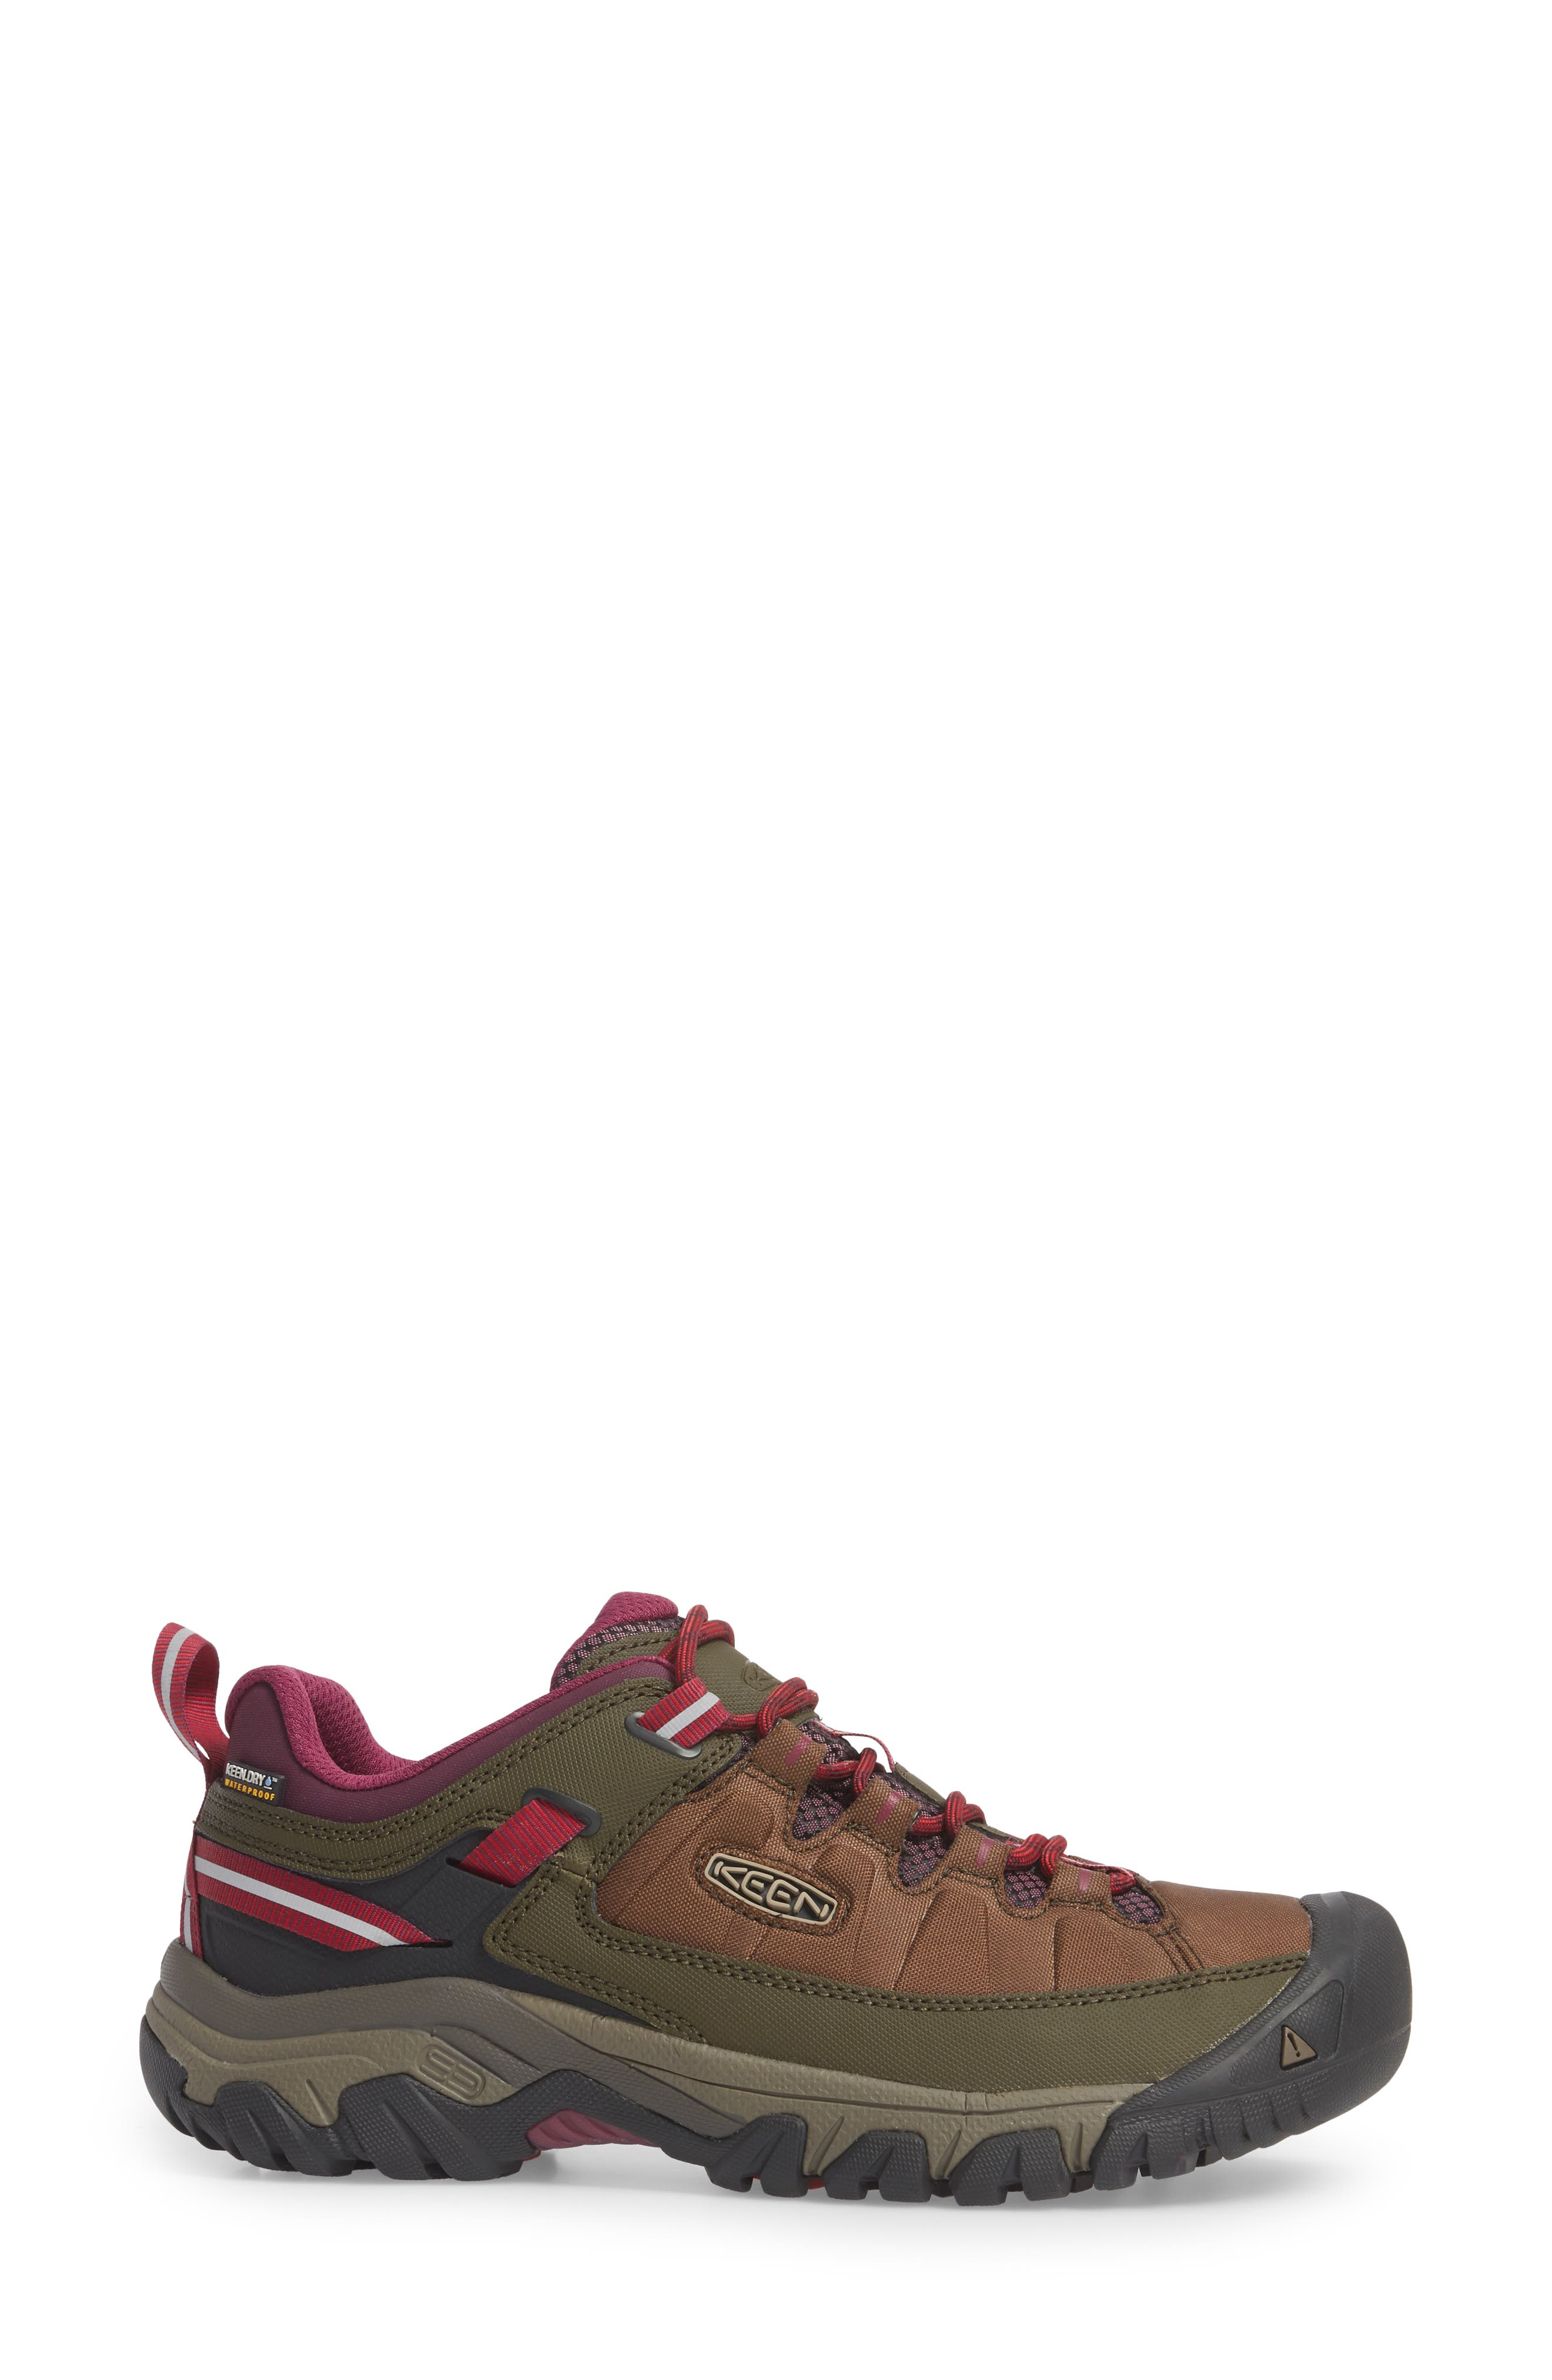 Alternate Image 3  - Keen Targhee EXP Waterproof Hiking Shoe (Women)